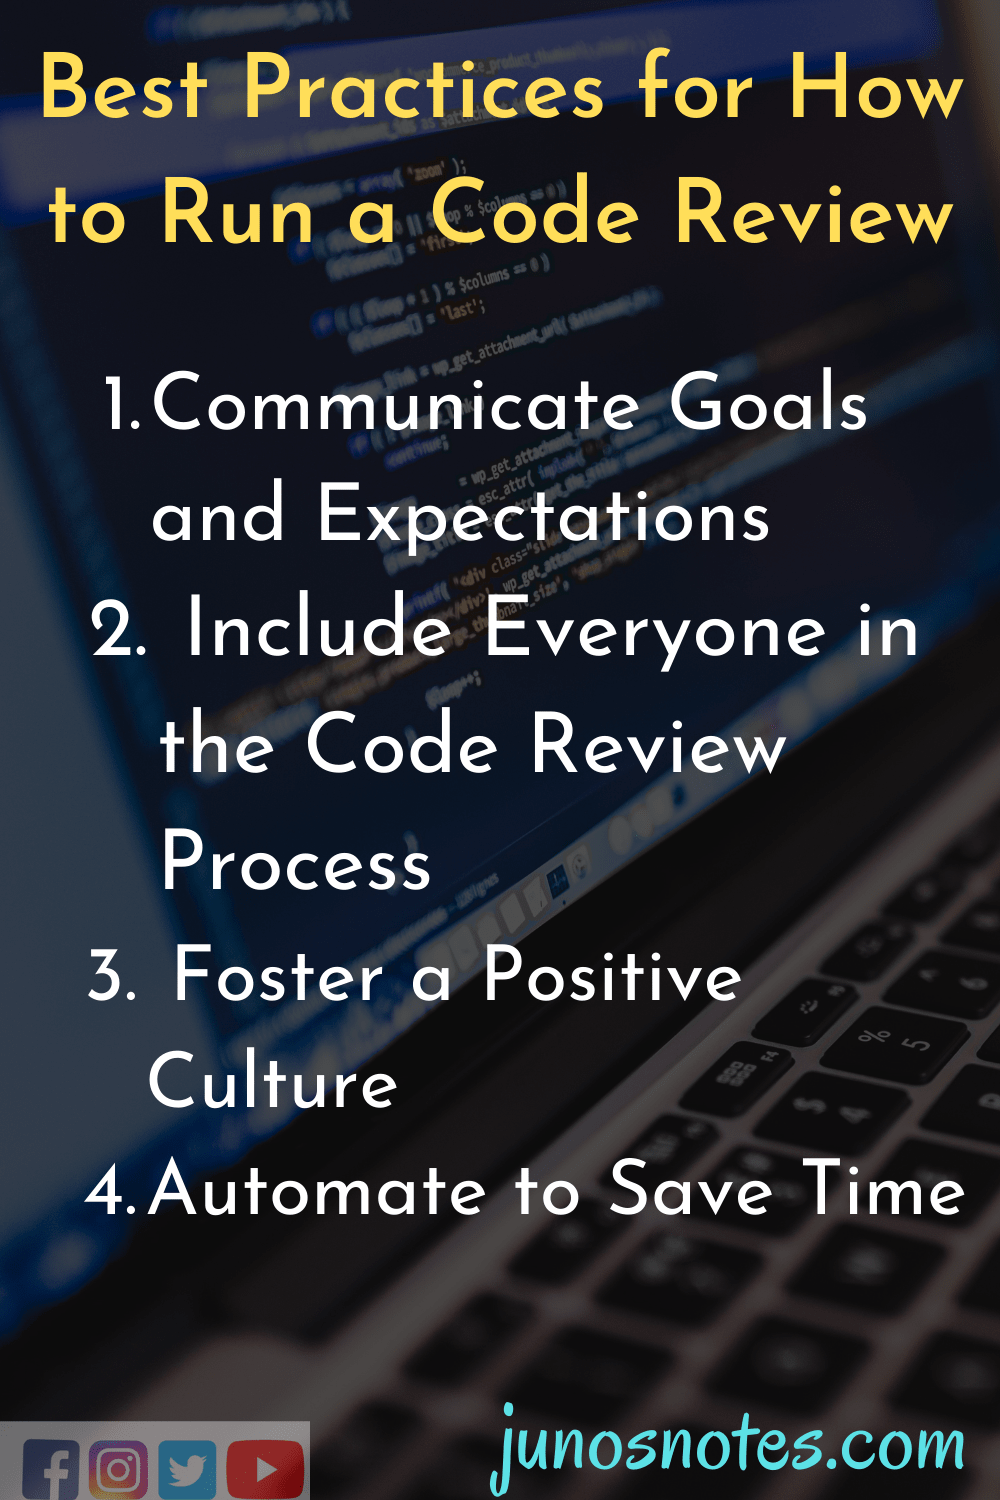 Best Practices for How to Run a Code Review